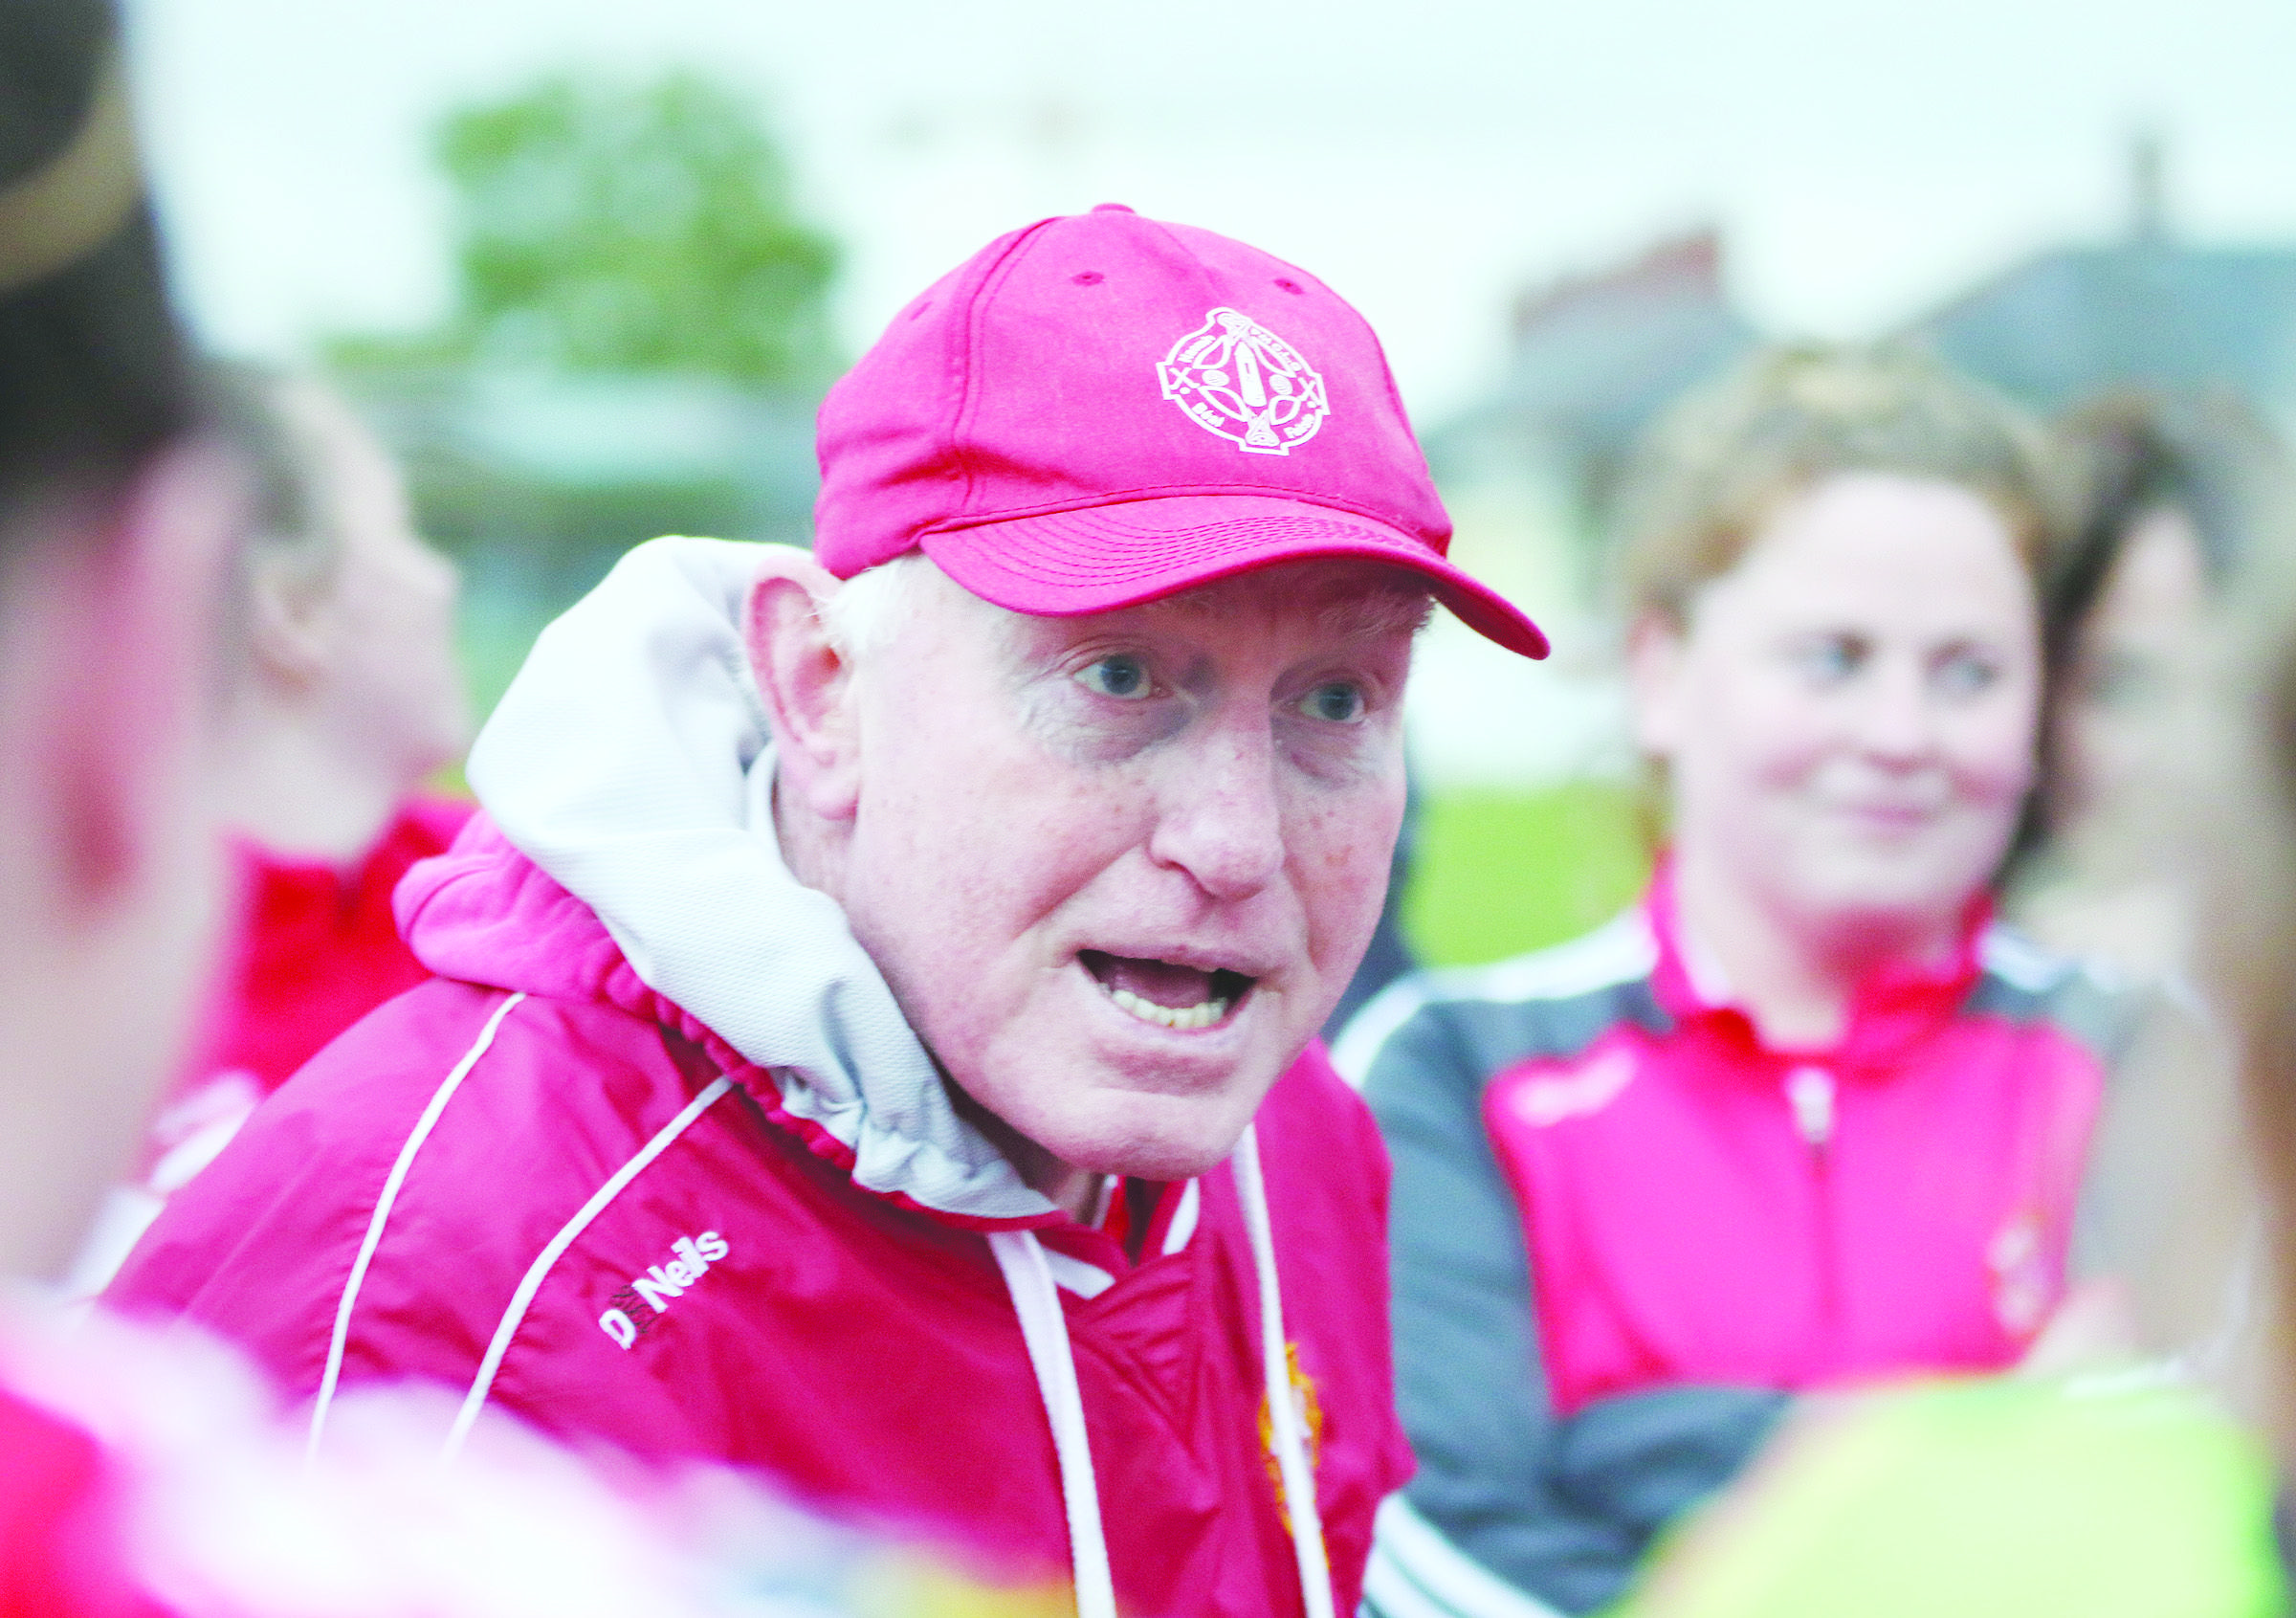 St Paul's stalwart Brian Coyle was a major driving force behind the tournament that began in 1982